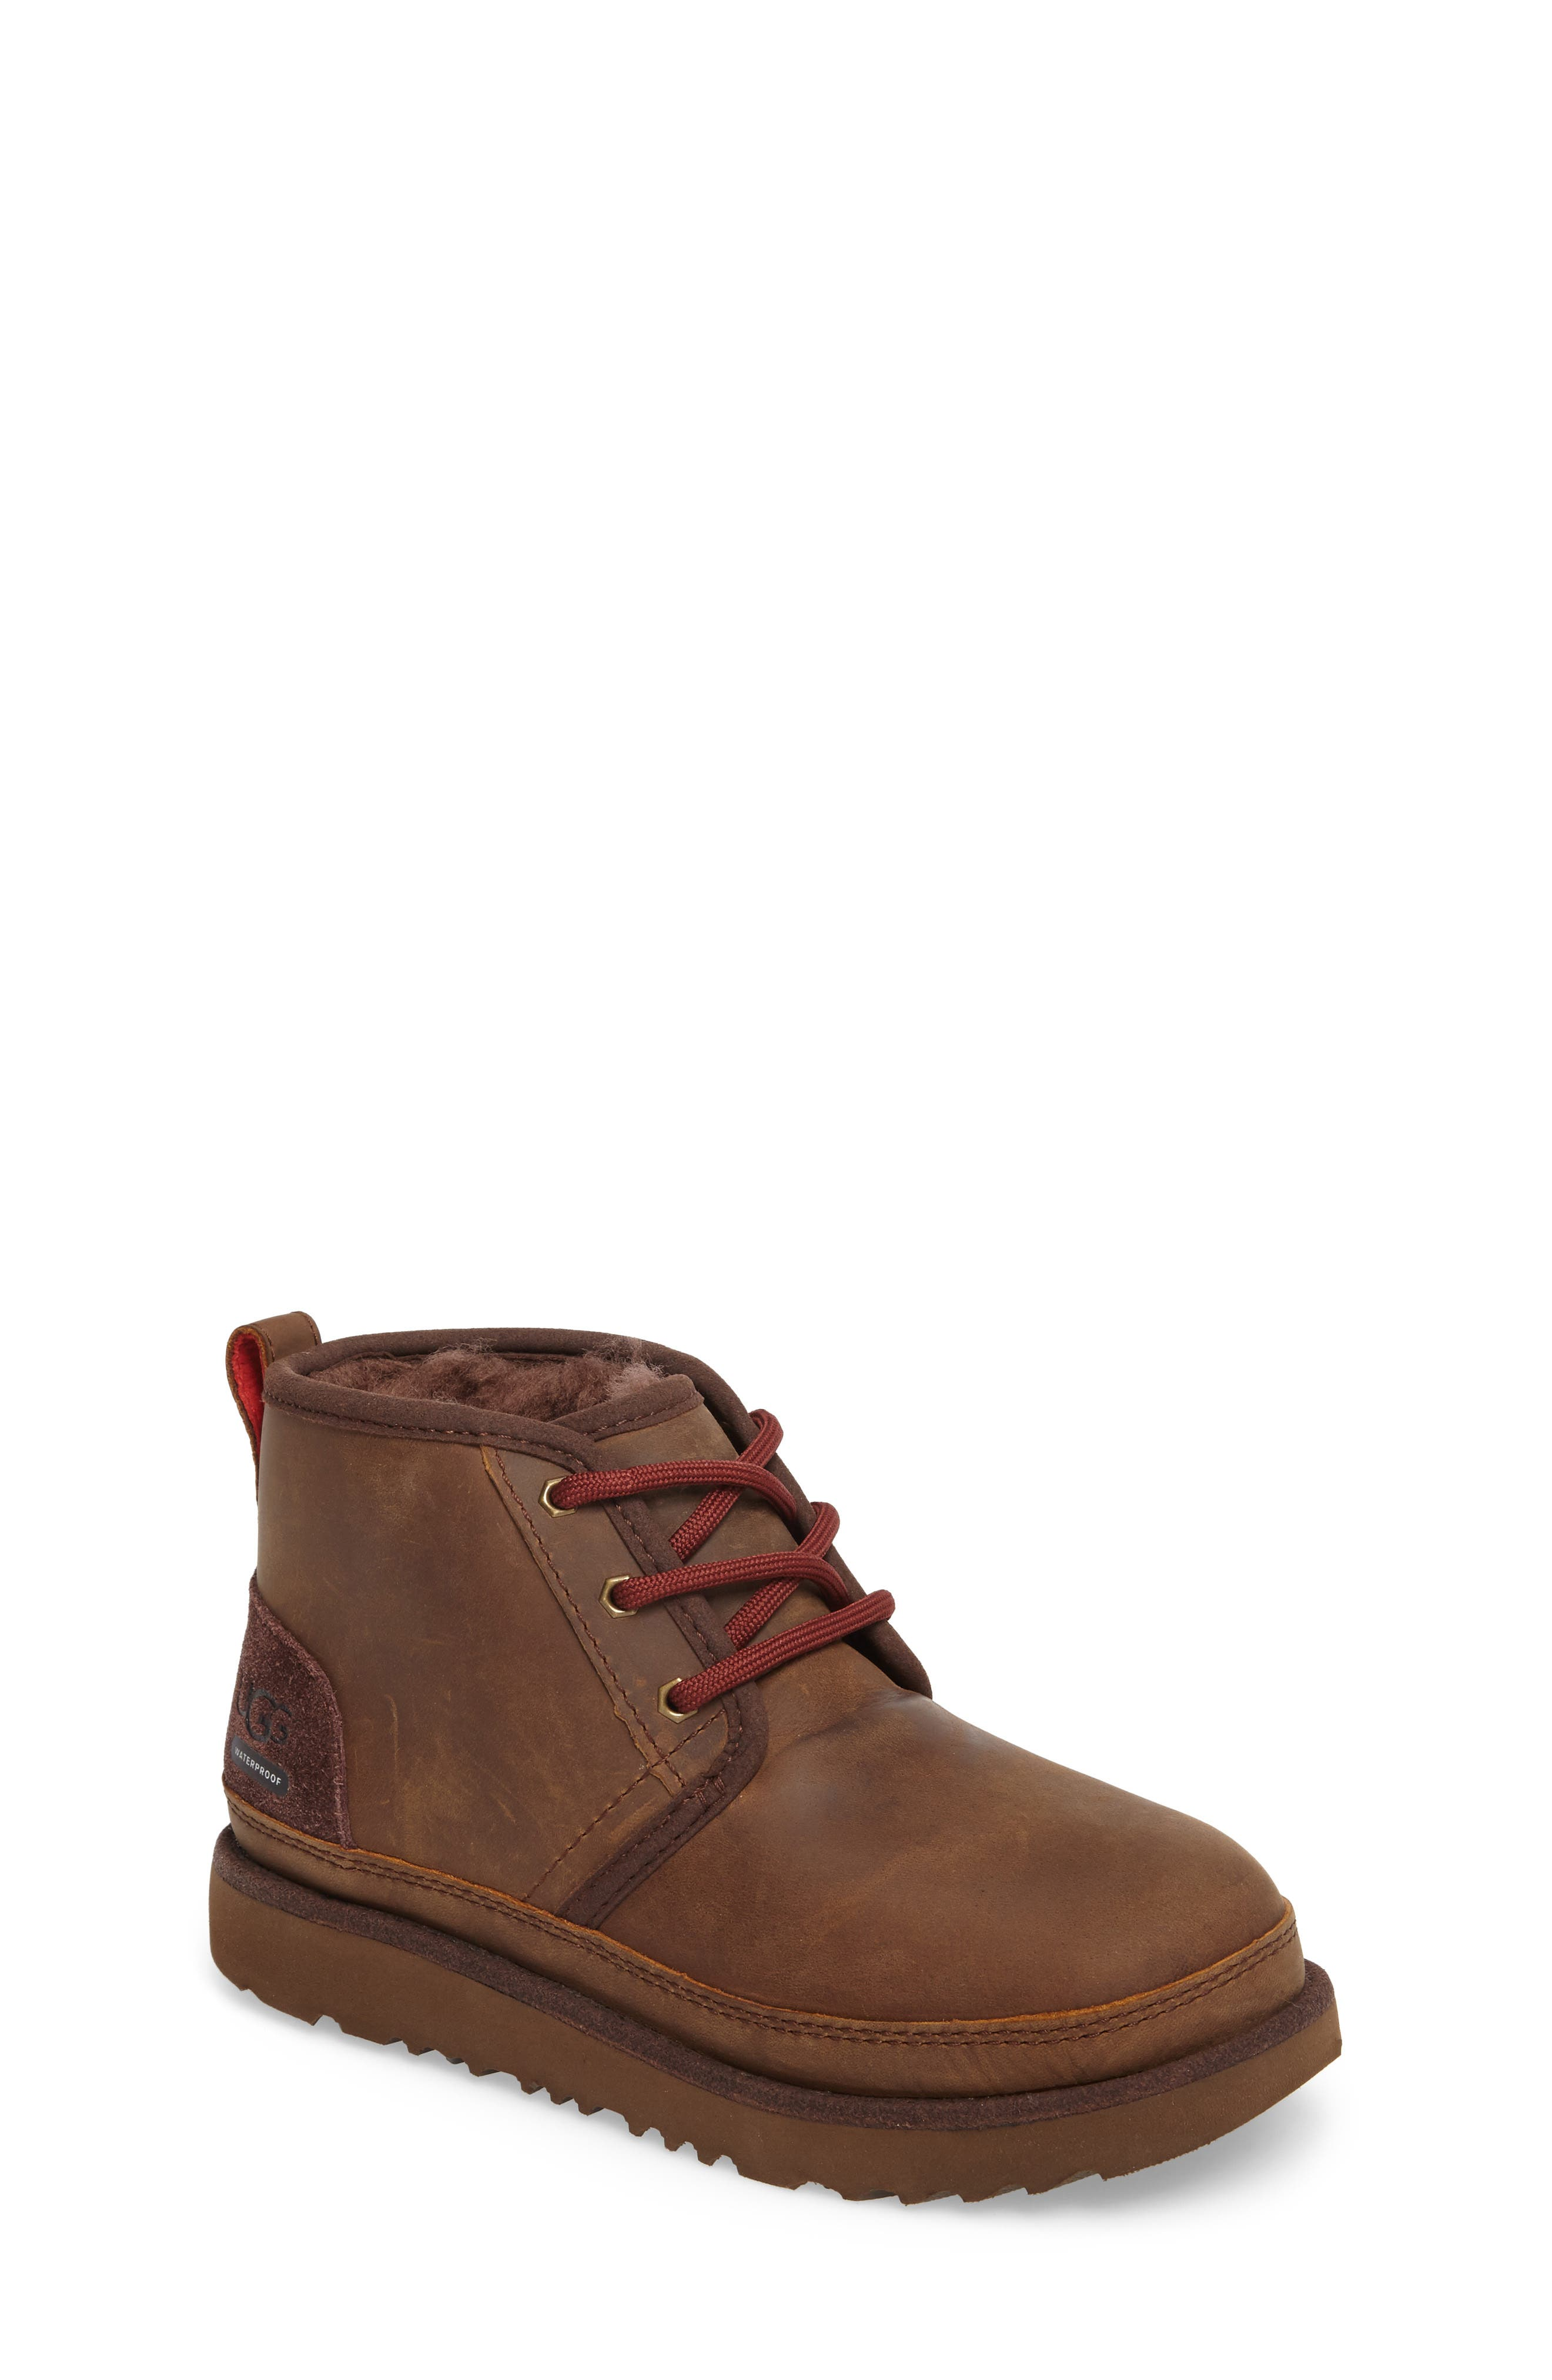 Neumel II Waterproof Chukka,                             Main thumbnail 1, color,                             Grizzly